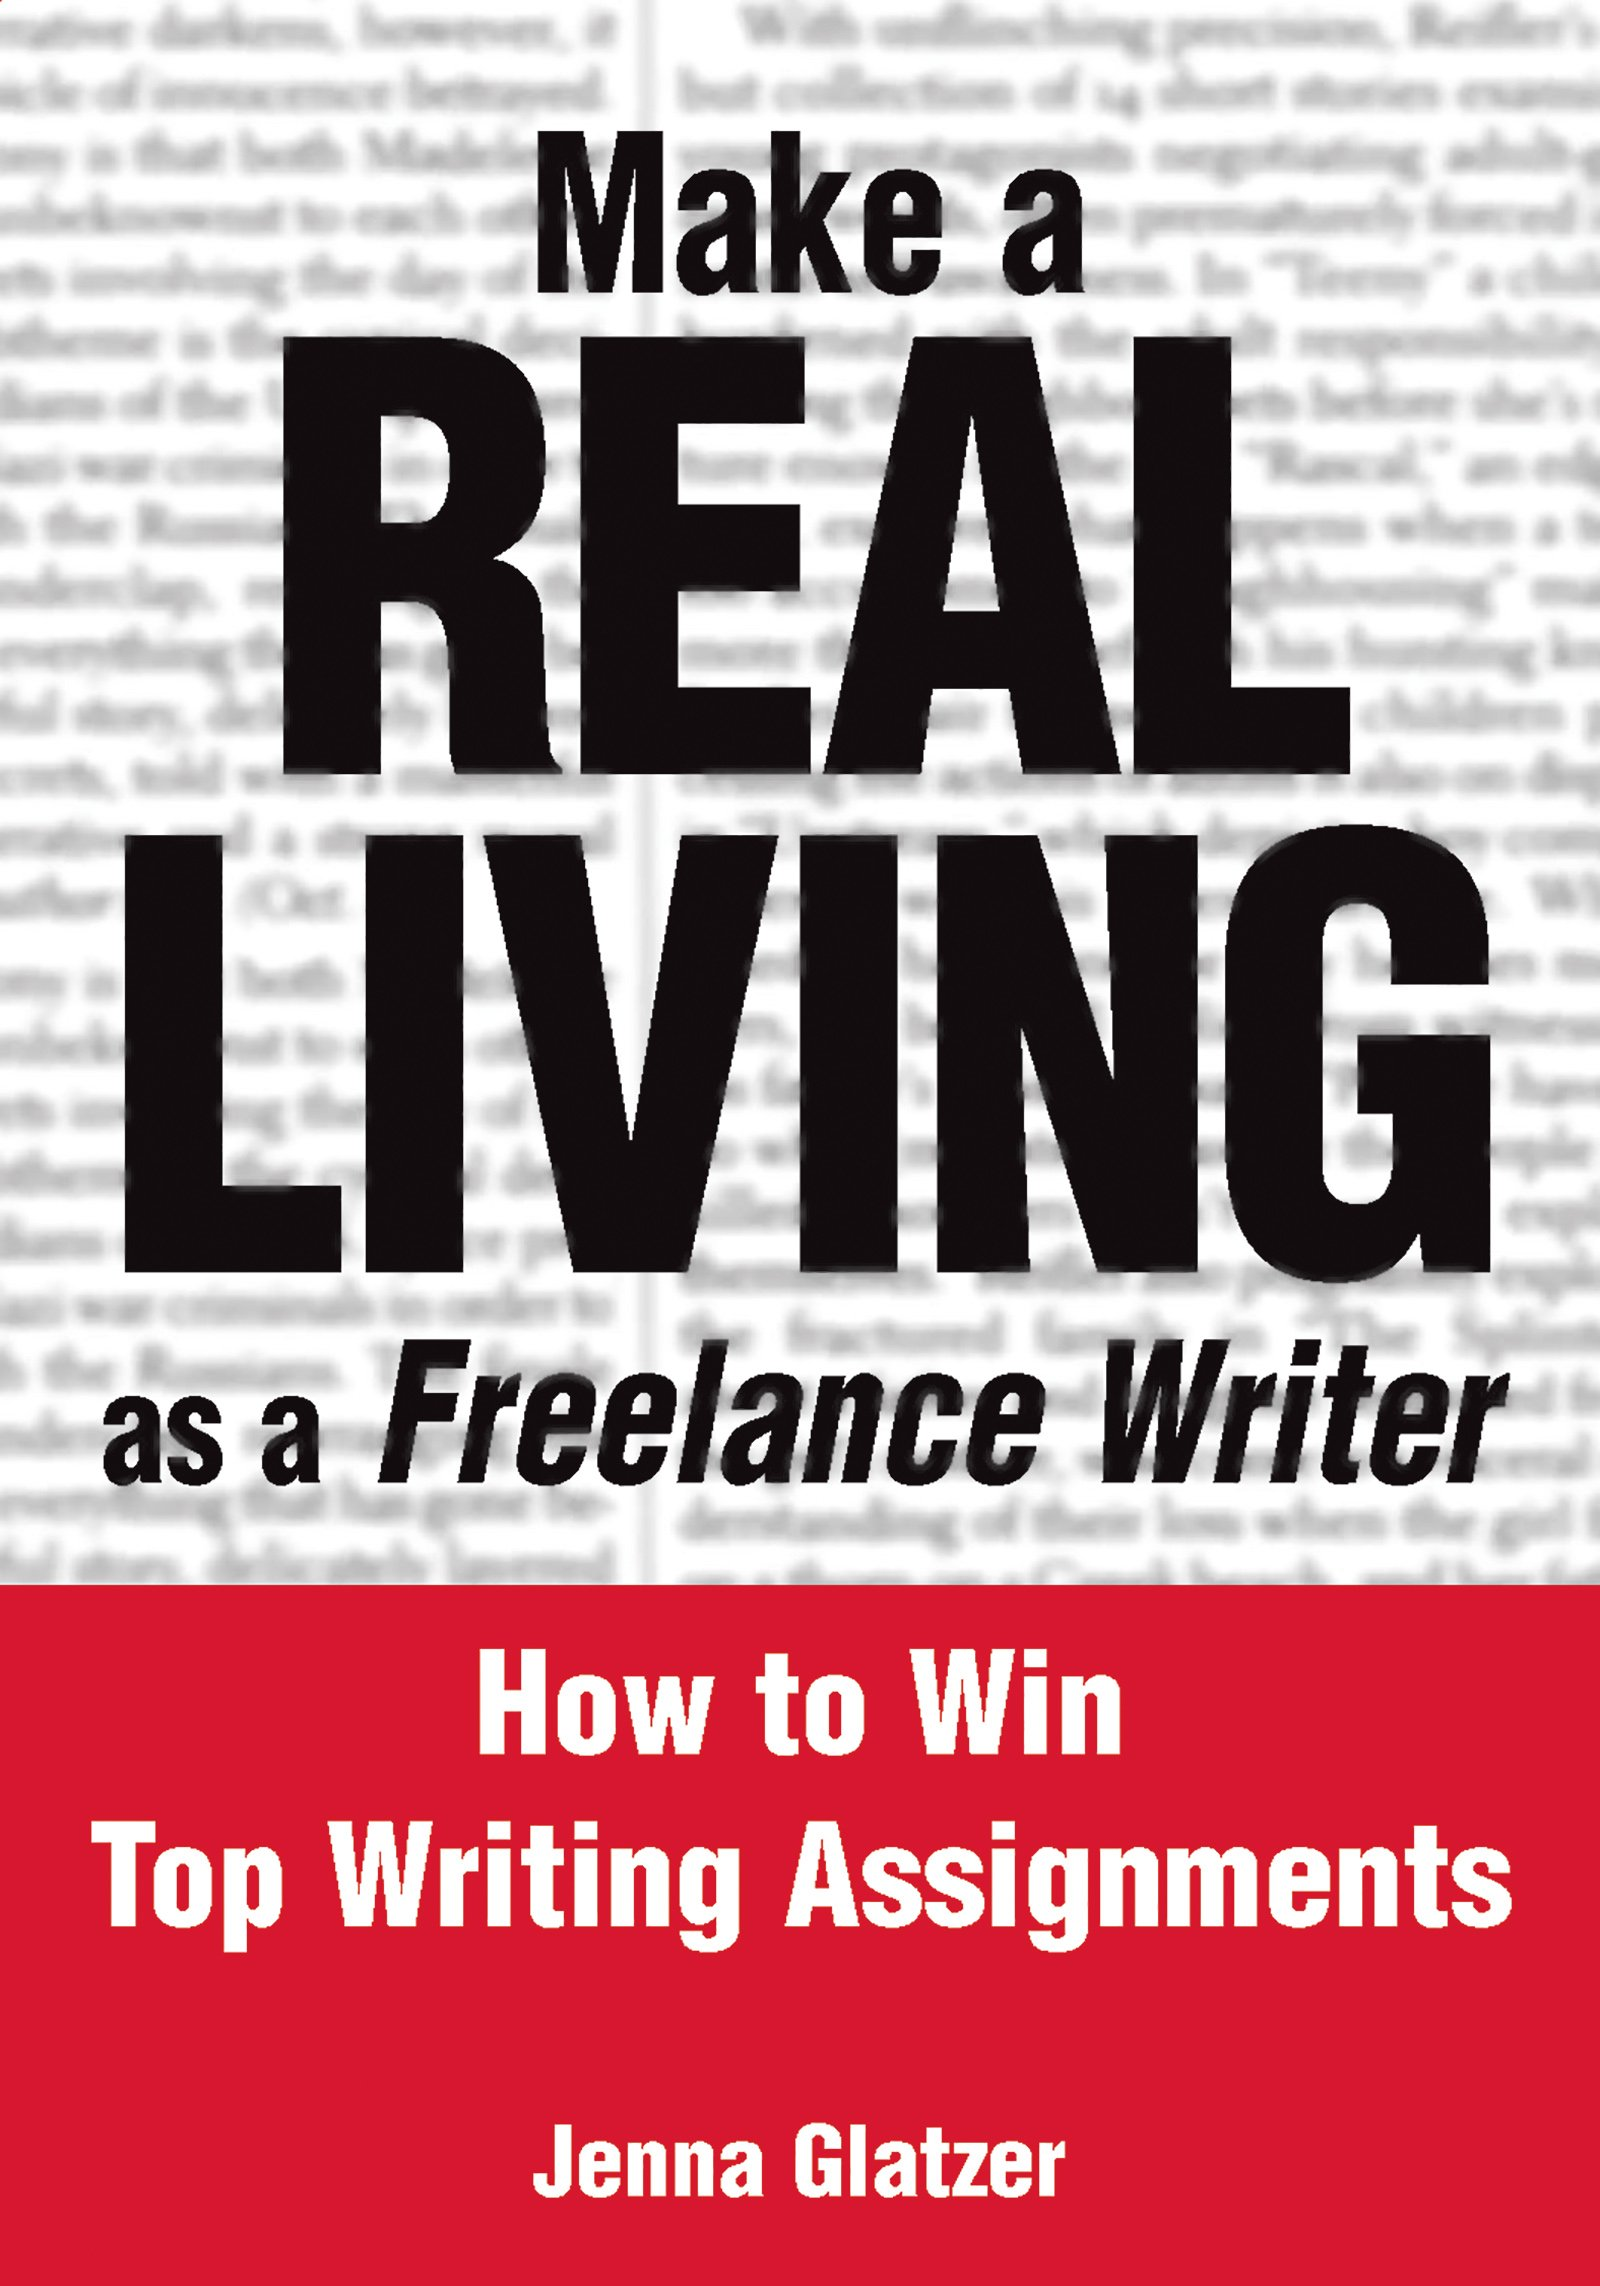 How to grow your freelance writing business: